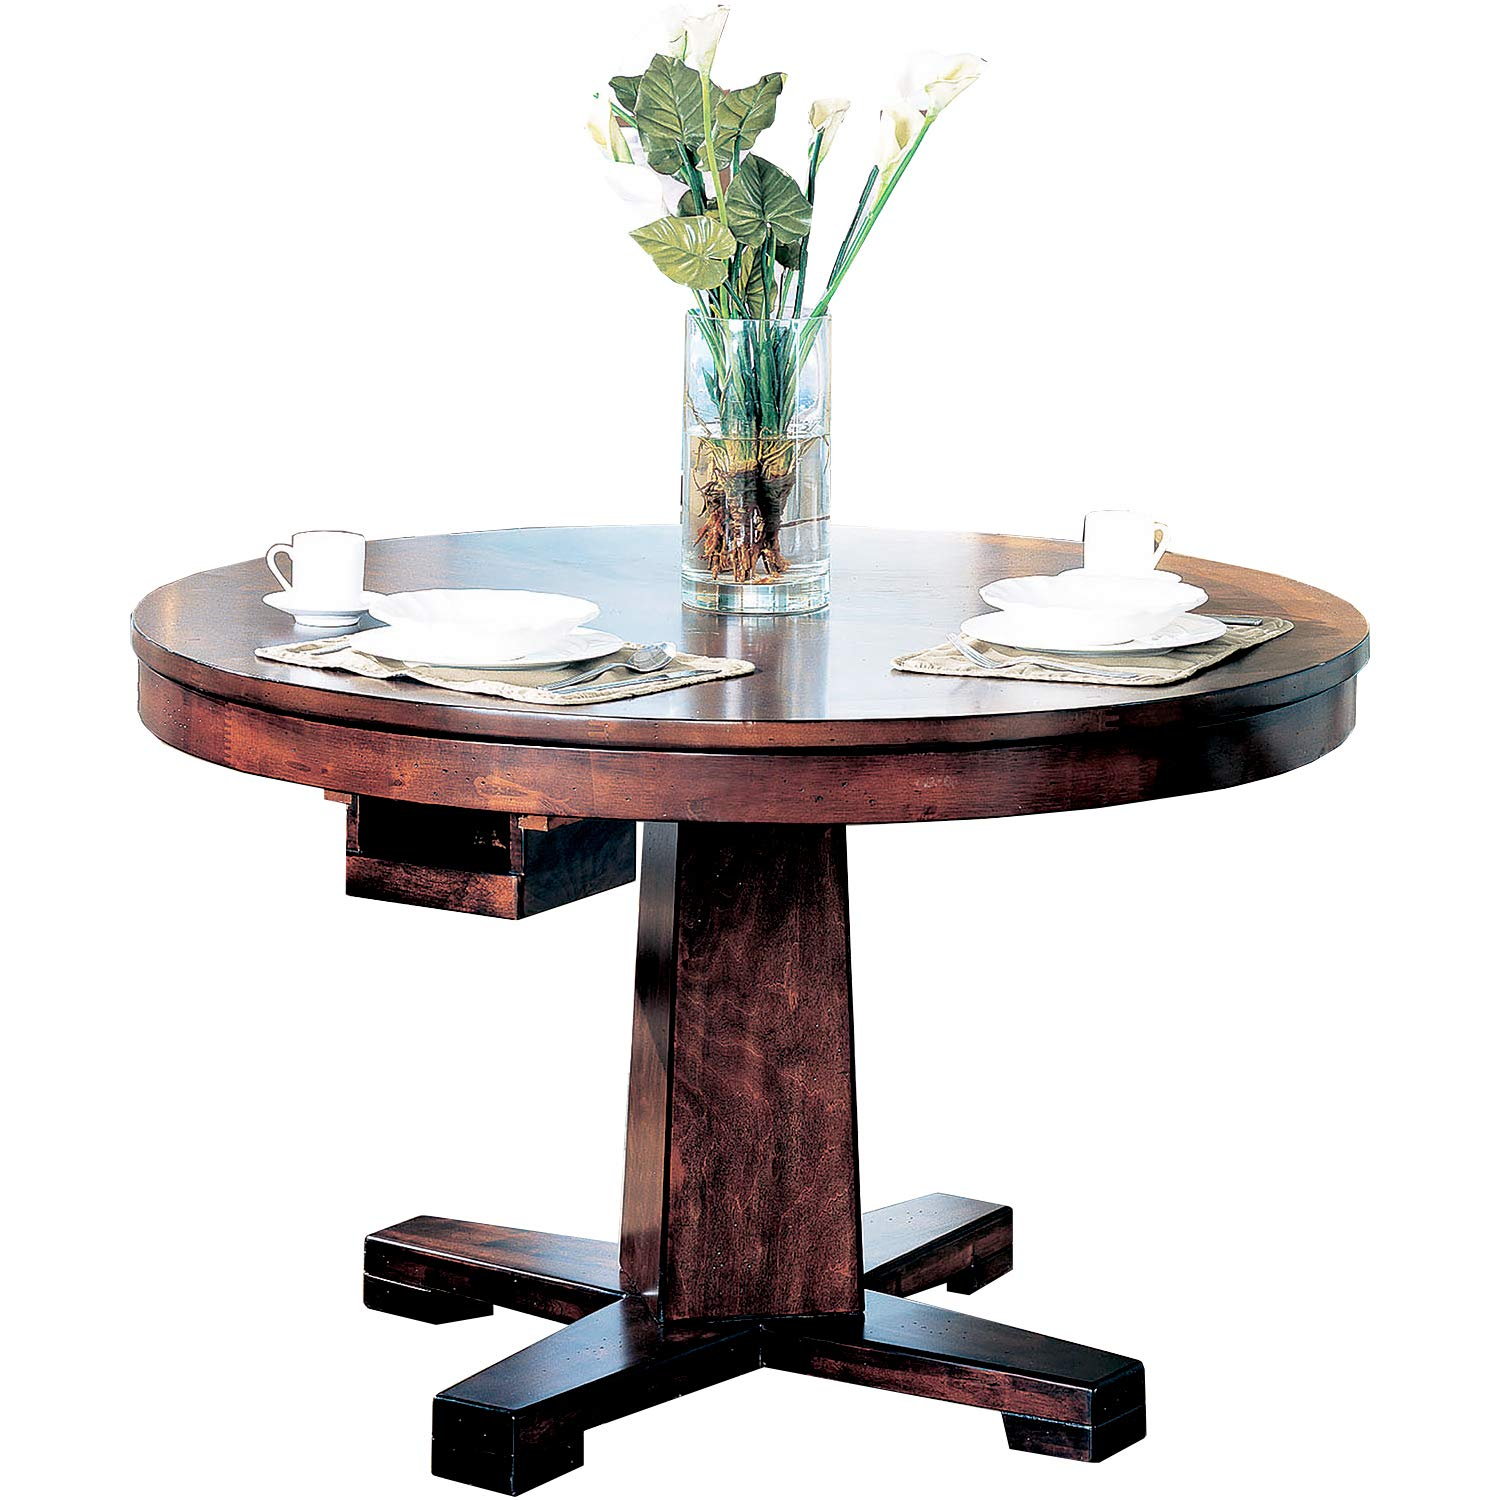 Marietta 3-in-1 Game Table Tobacco by Coaster Home Furnishings